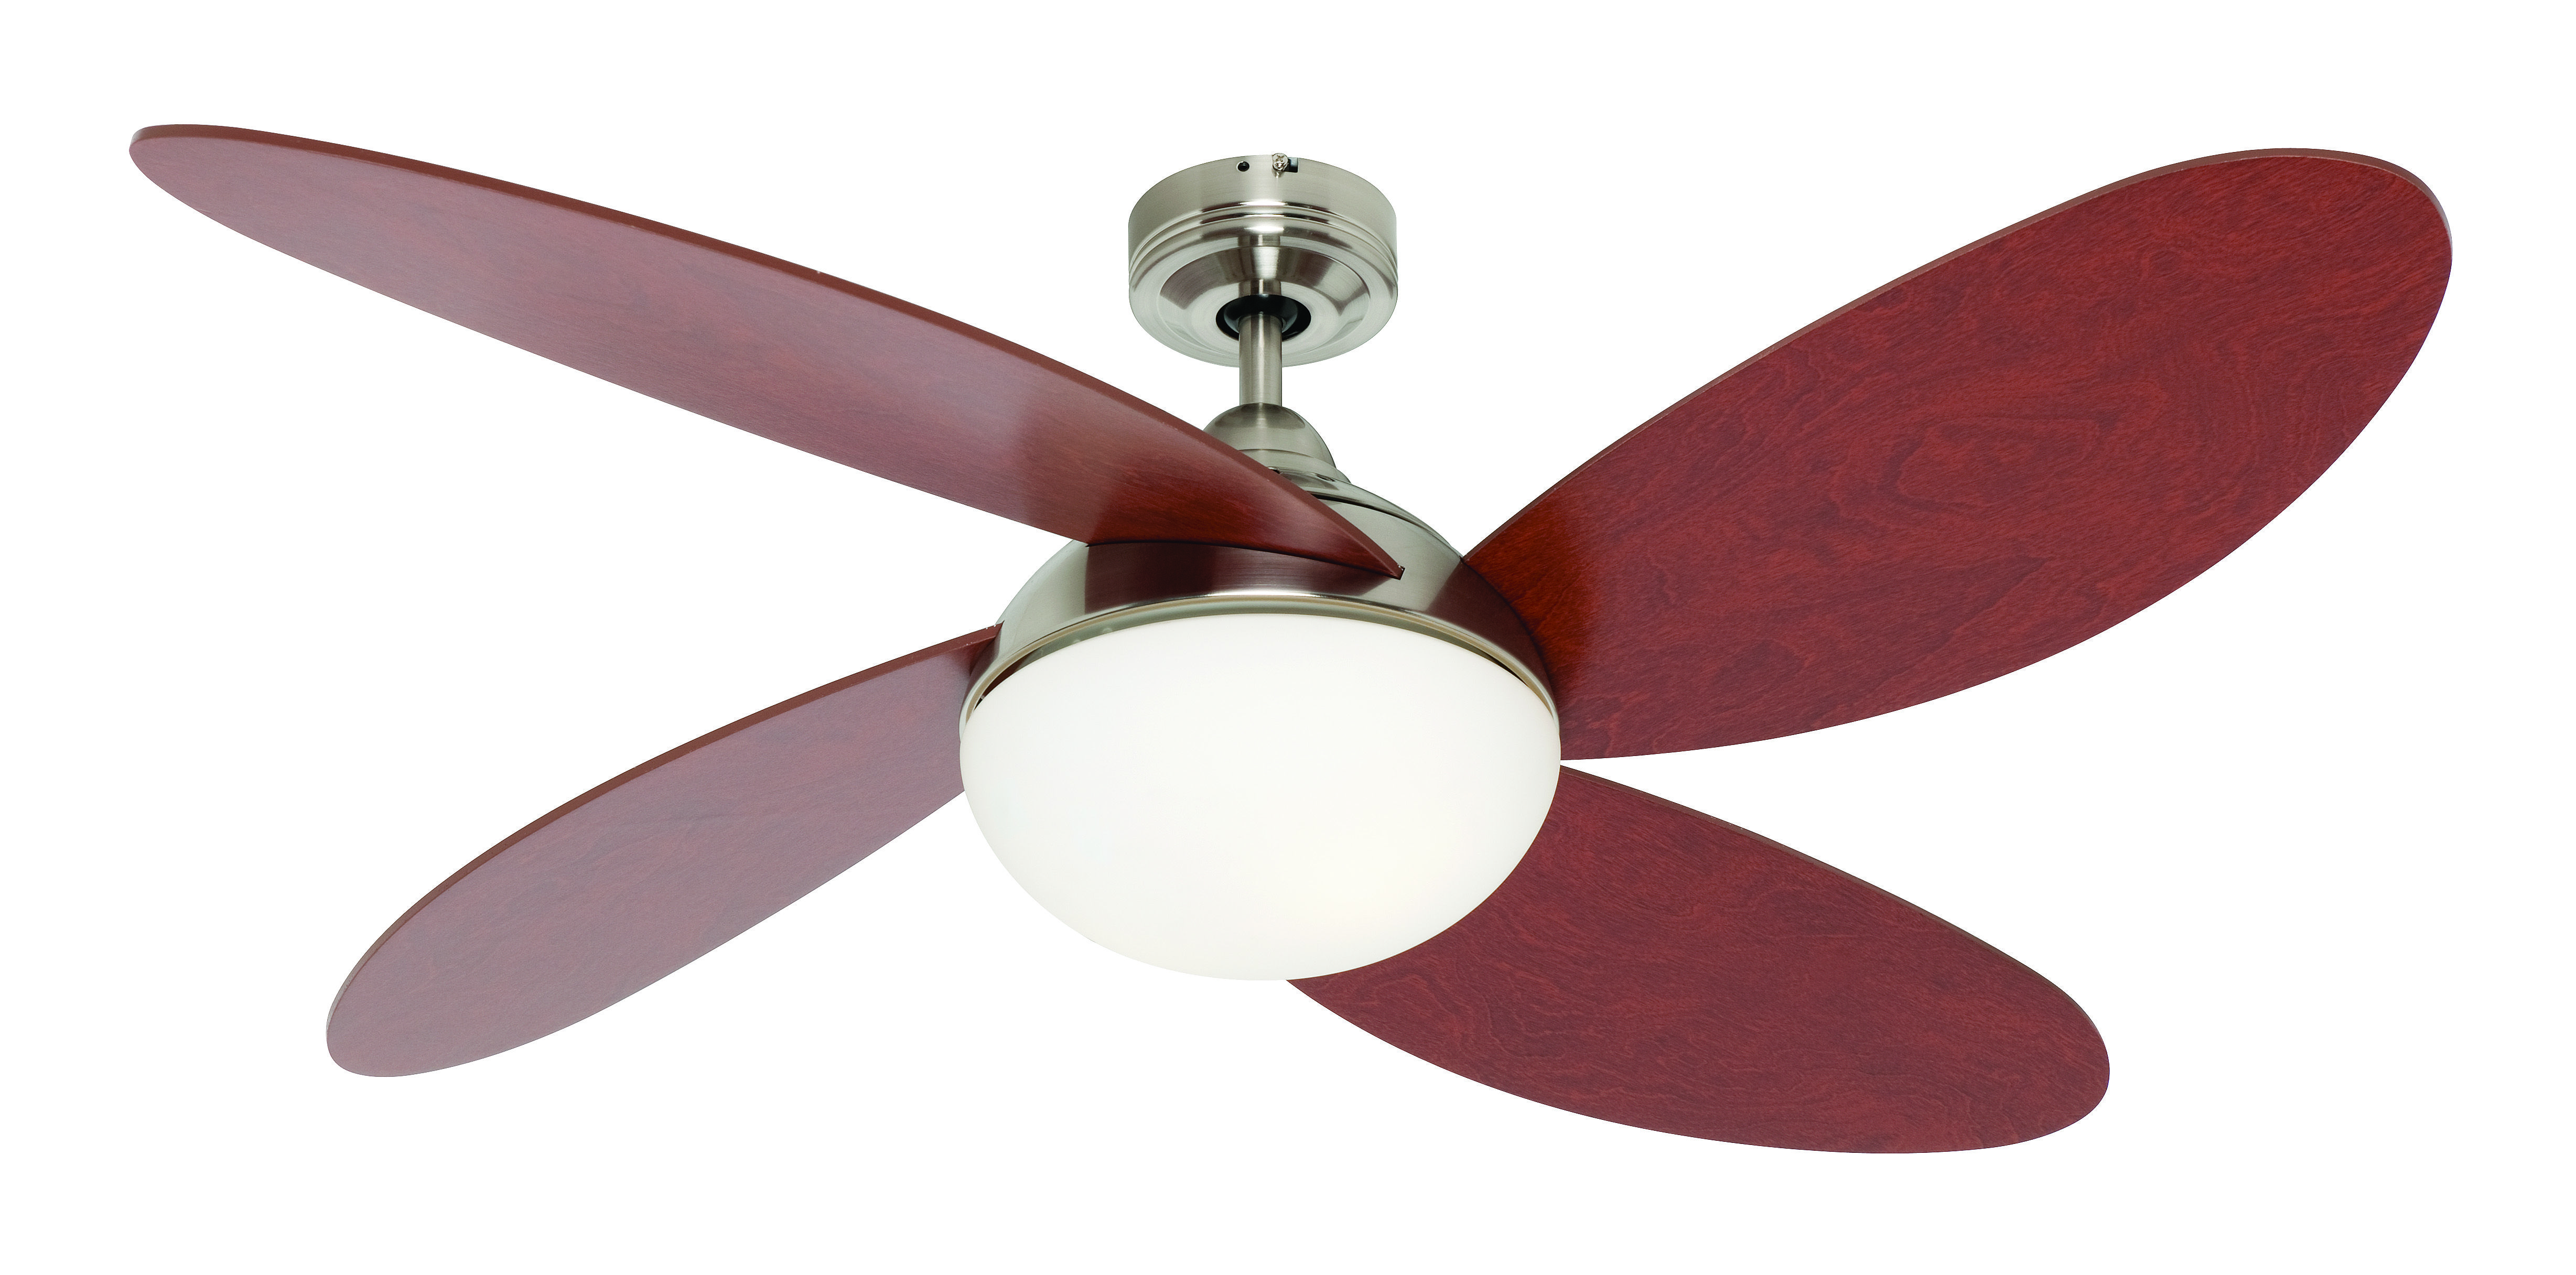 replacement blade covers in fans product fan helpful ceiling customer wood best hunter blades rated designs reviews douglas pcr image